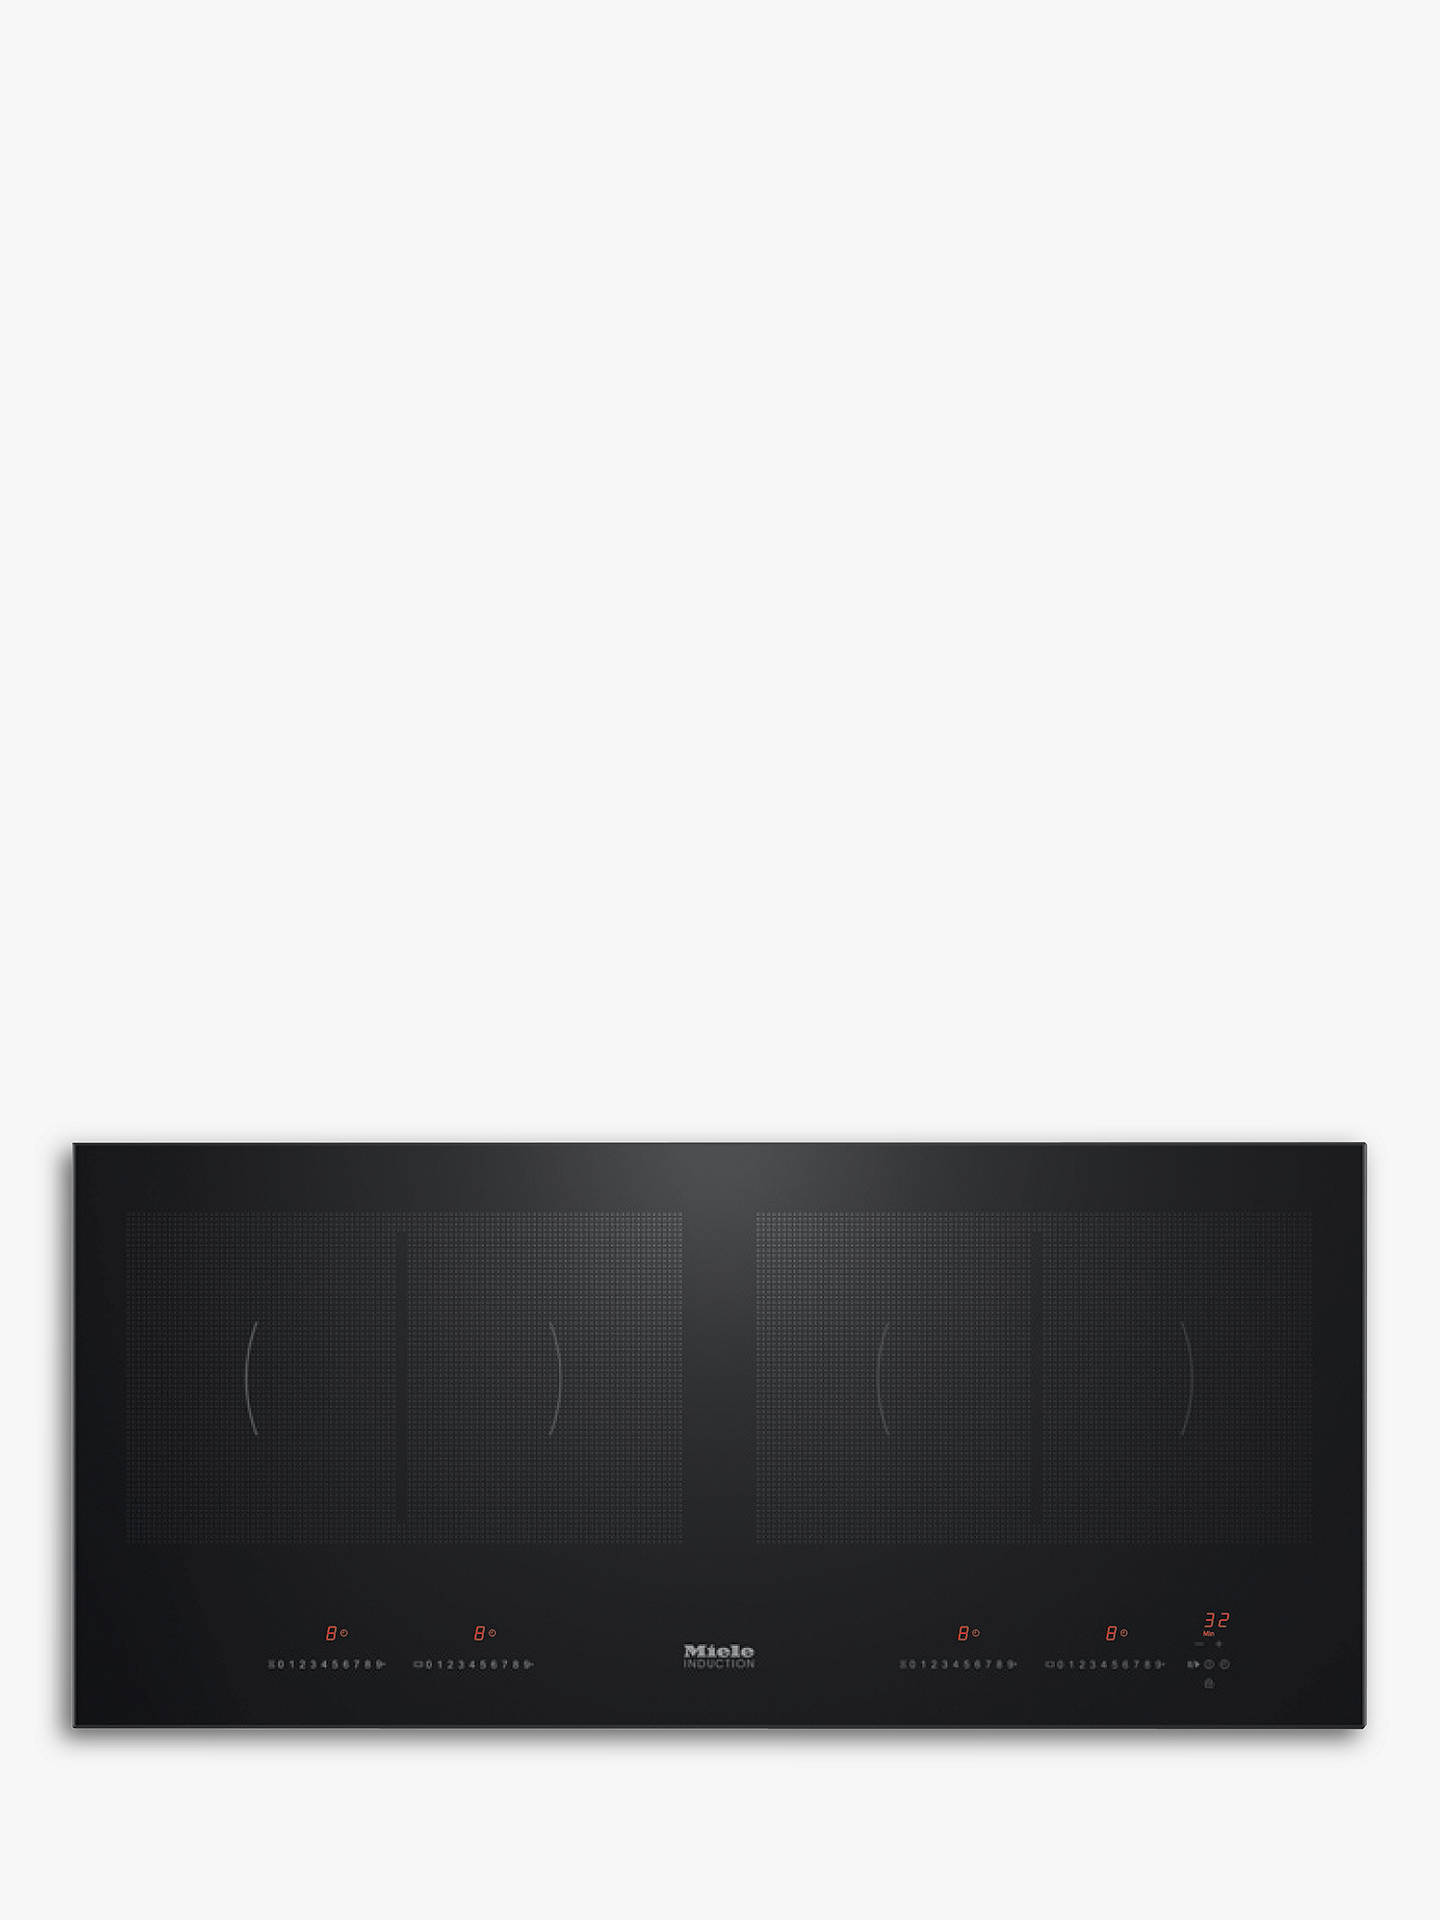 Buy Miele KM6381 Integrated Induction Hob Online at johnlewis.com